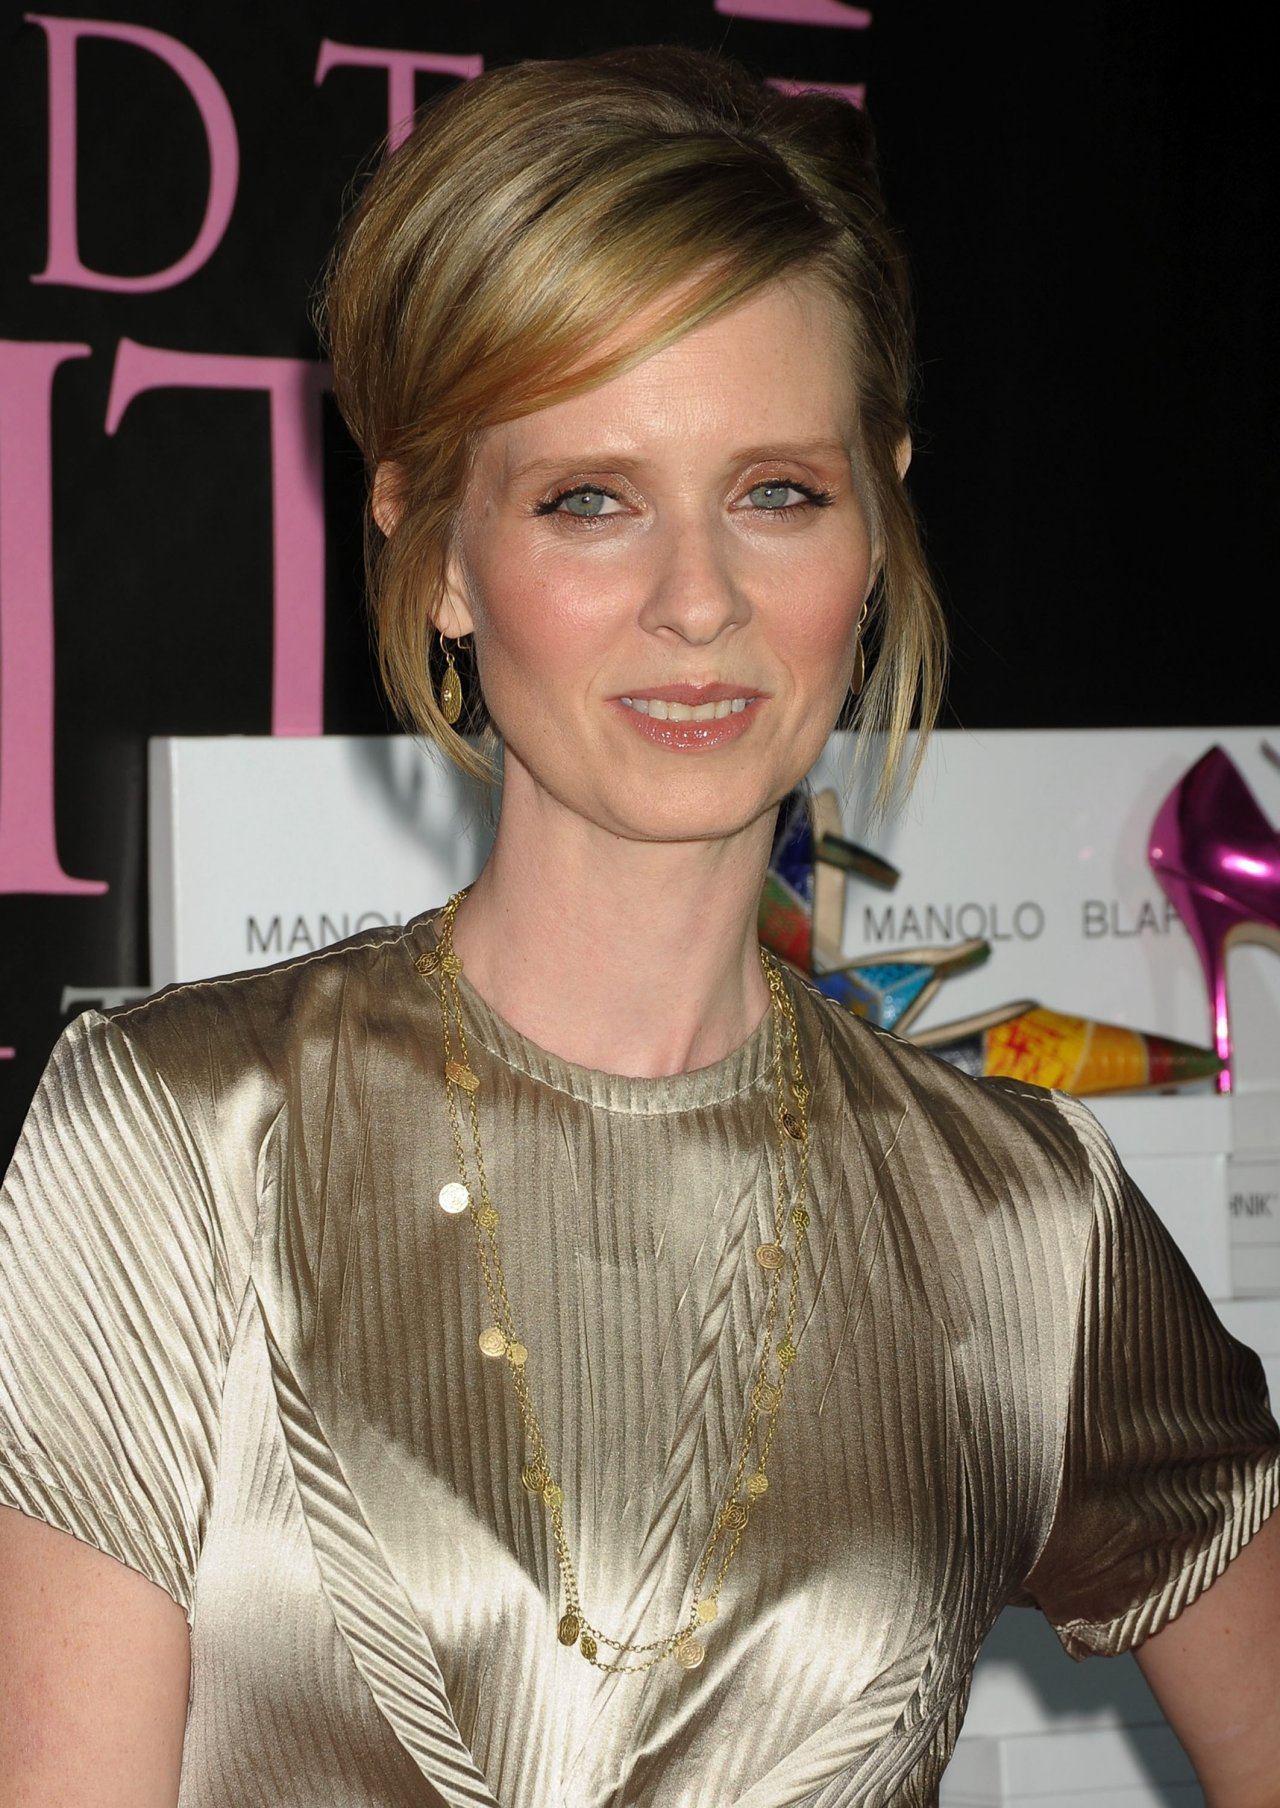 cynthia nixon wallpaper - photo #35